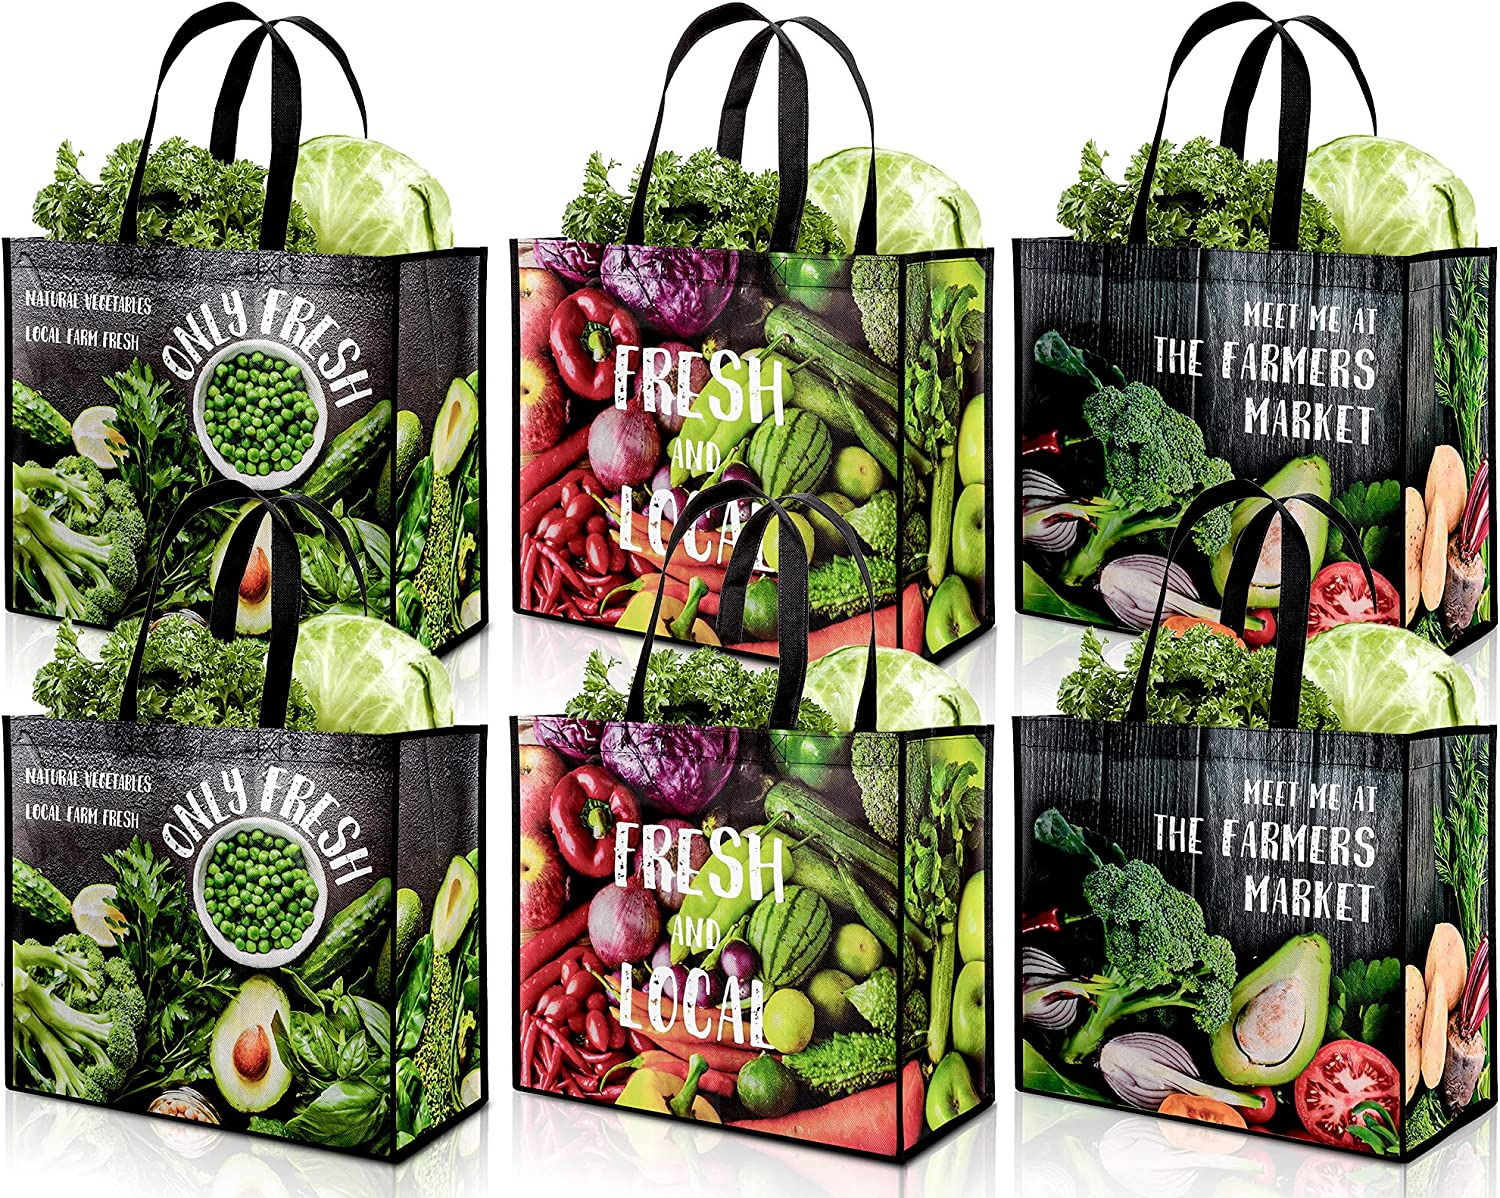 Whaline 12 Pack Extra Large Reusable Grocery Shopping Bags Vegetable Pattern Bags with Handles Extremely Durable Waterproof Foldable Totes Food Storage Farmer Market Bag